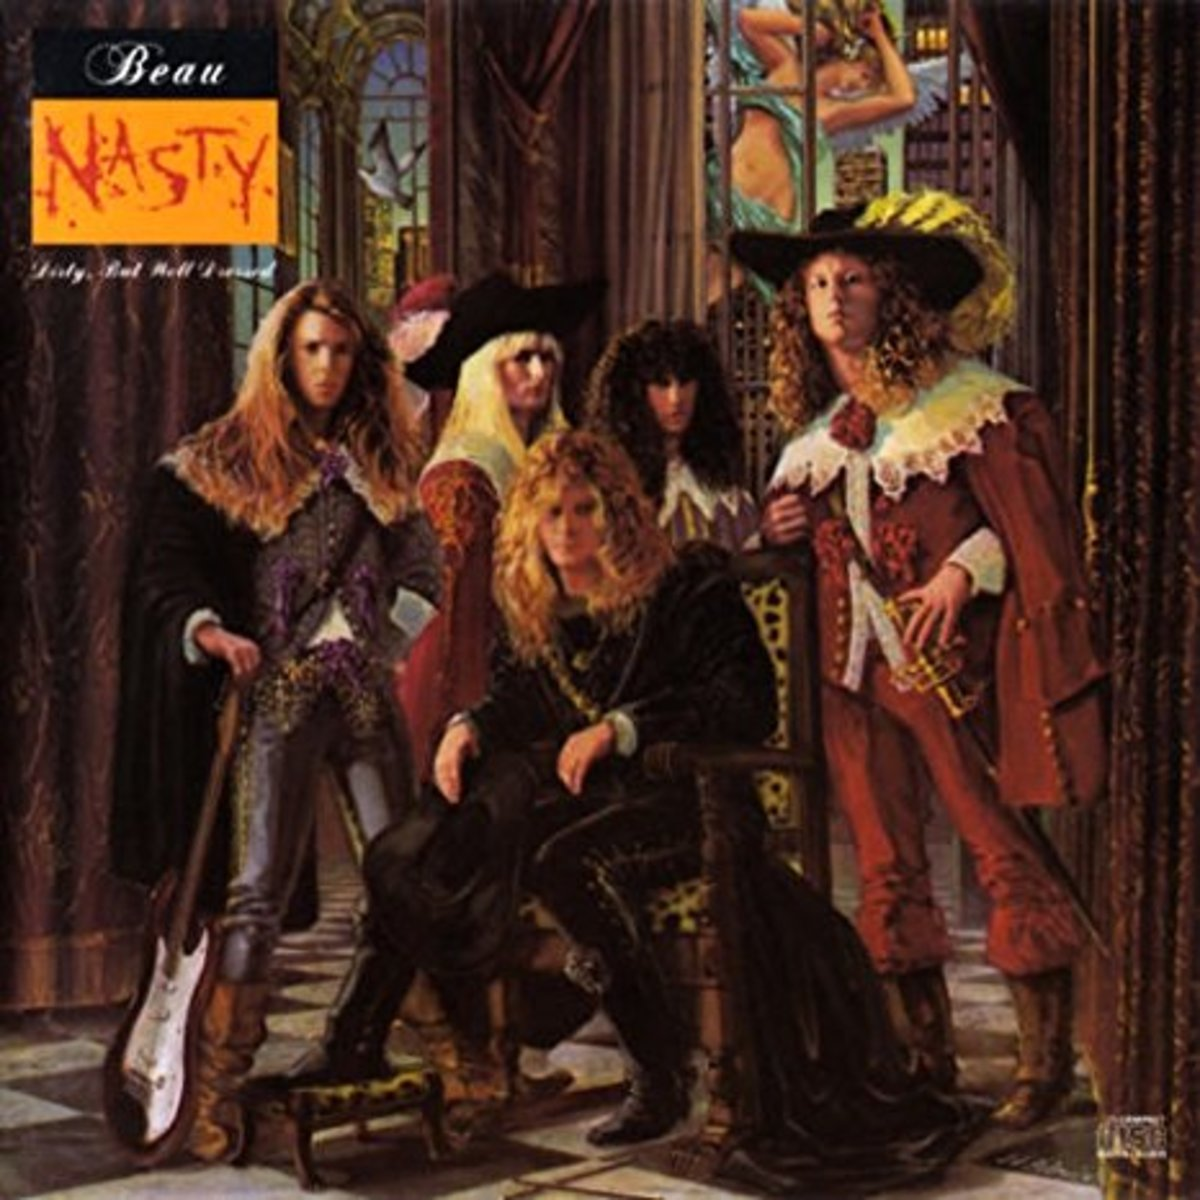 Forgotten Hard Rock Albums Beau Nasty Dirty but Well Dressed 1989  Spinditty